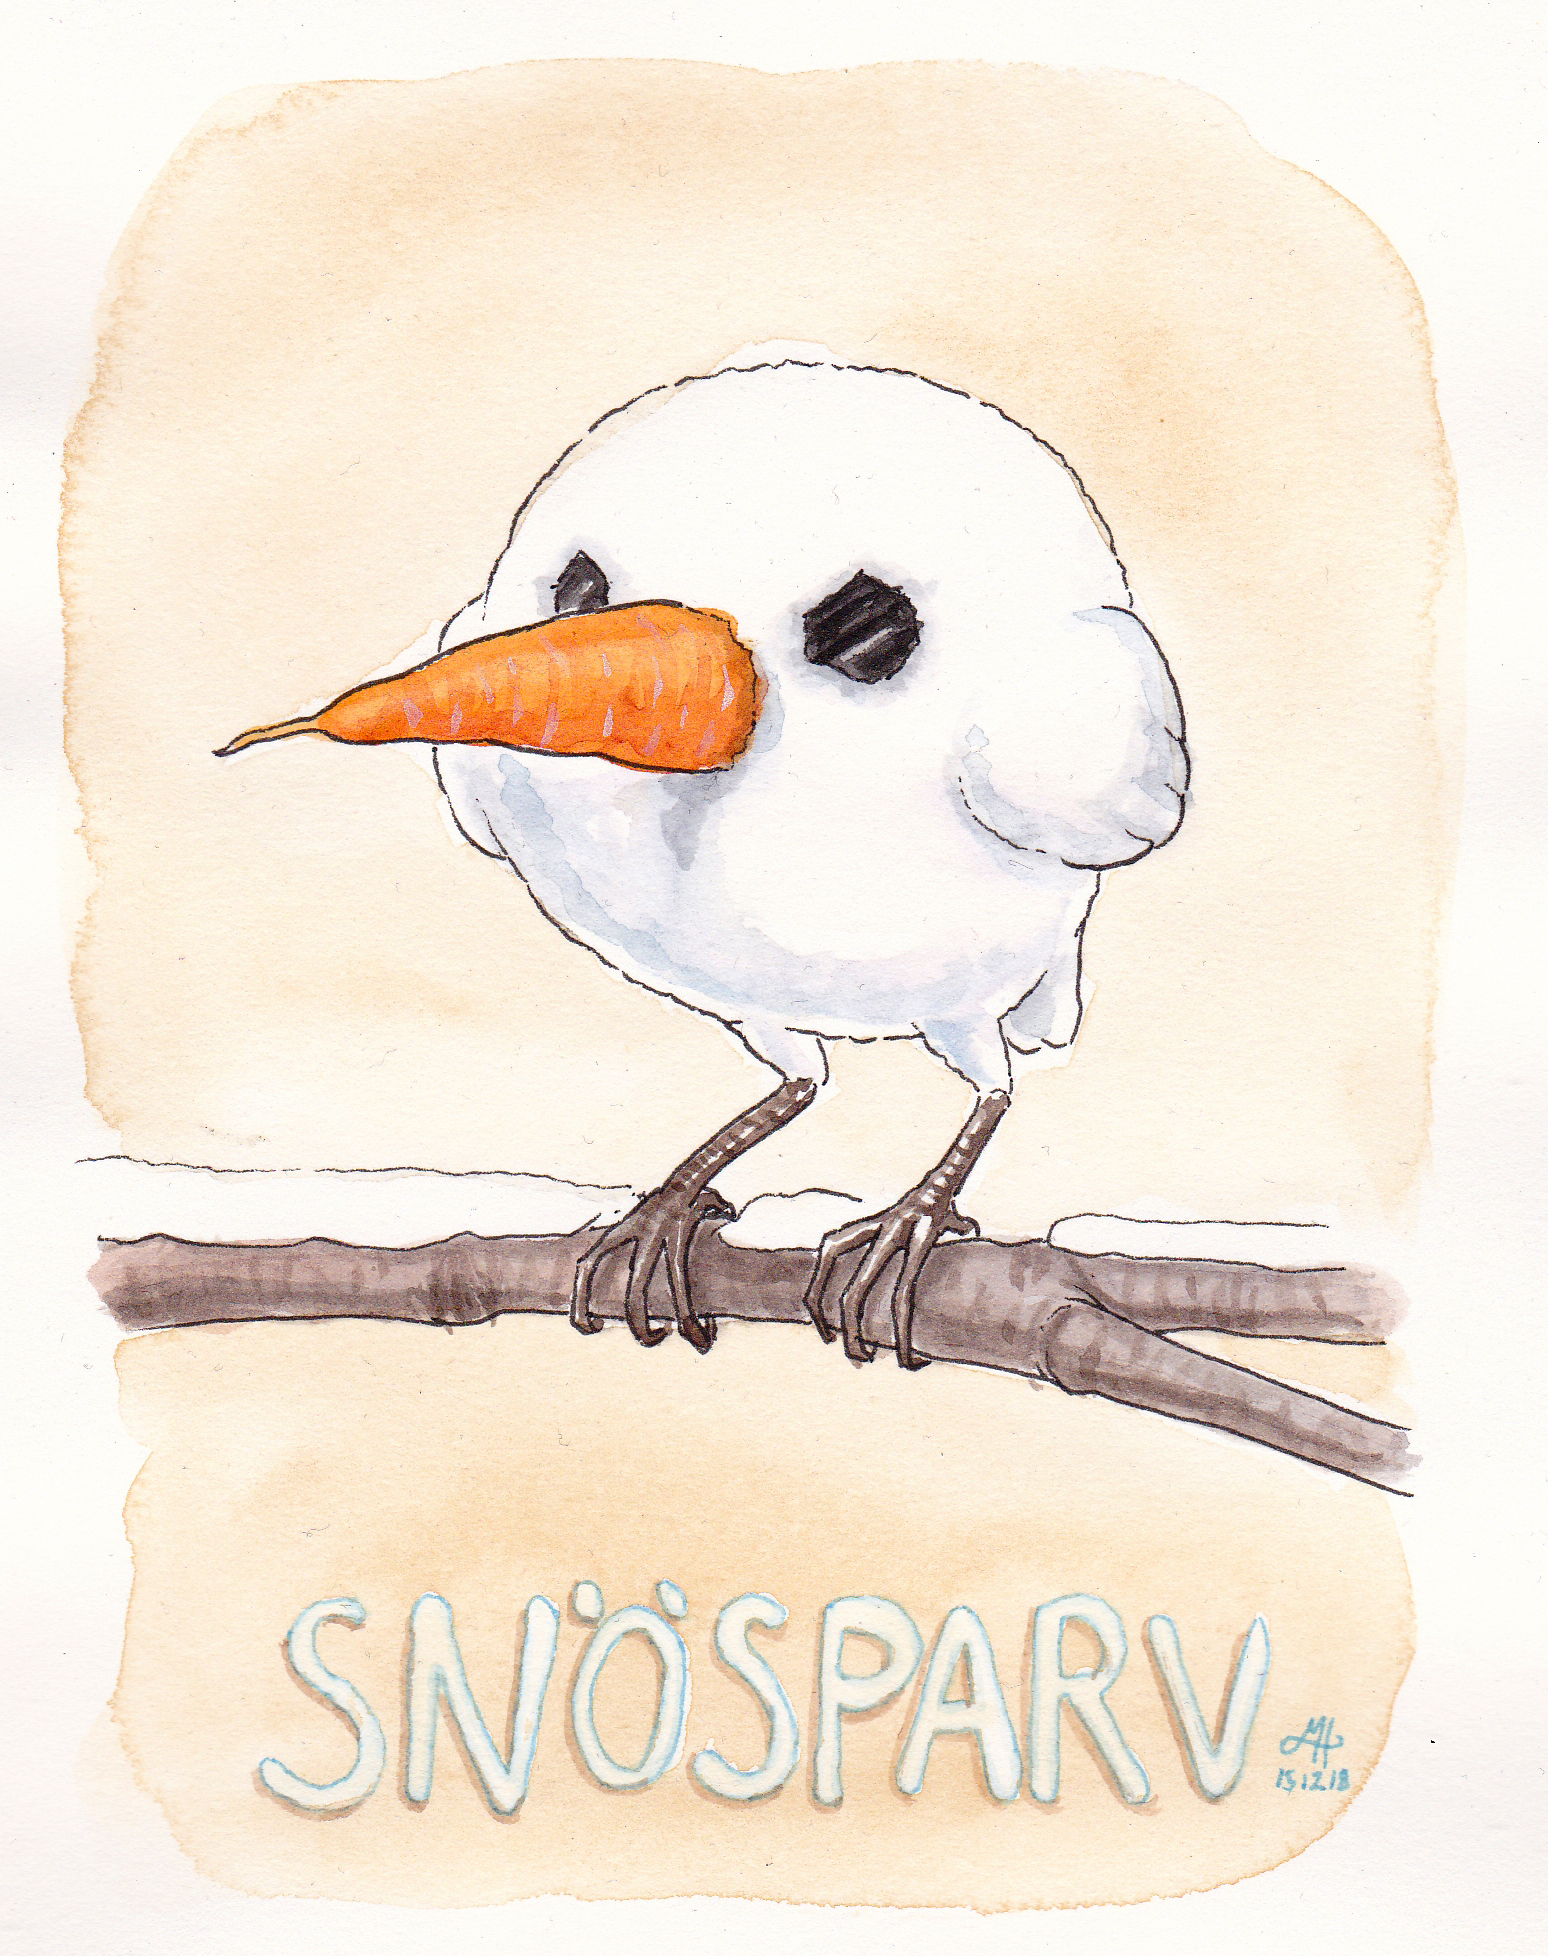 snösparv ordvits illustration